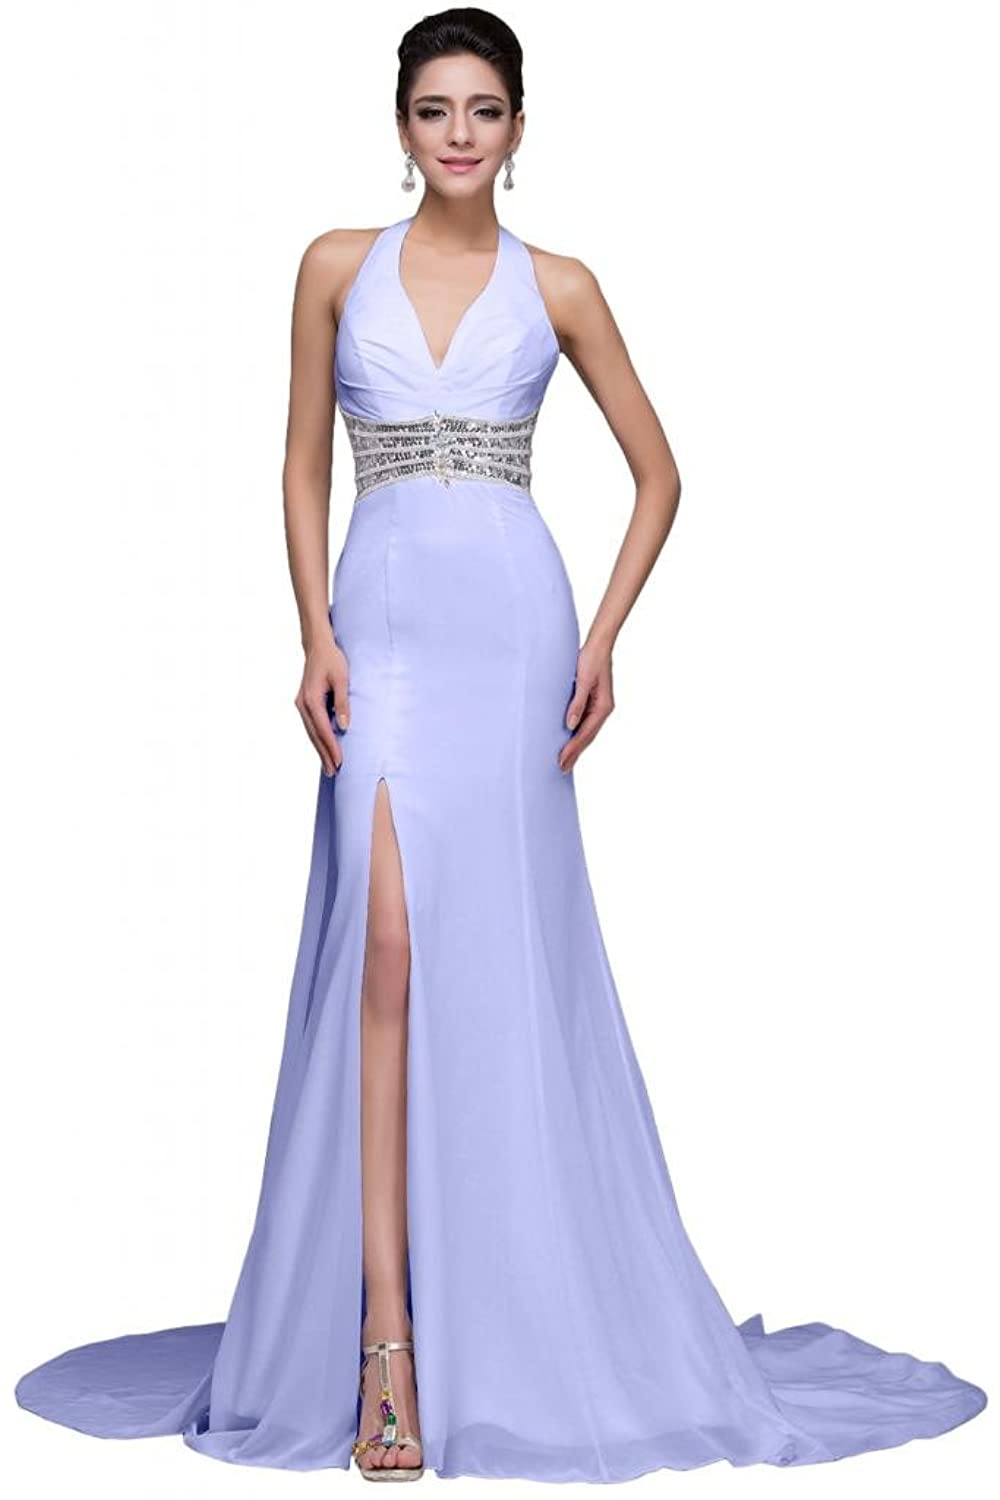 Sunvary Halter Sequined Sexy Front Slit Trailing Prom Pageant Dresses for Women